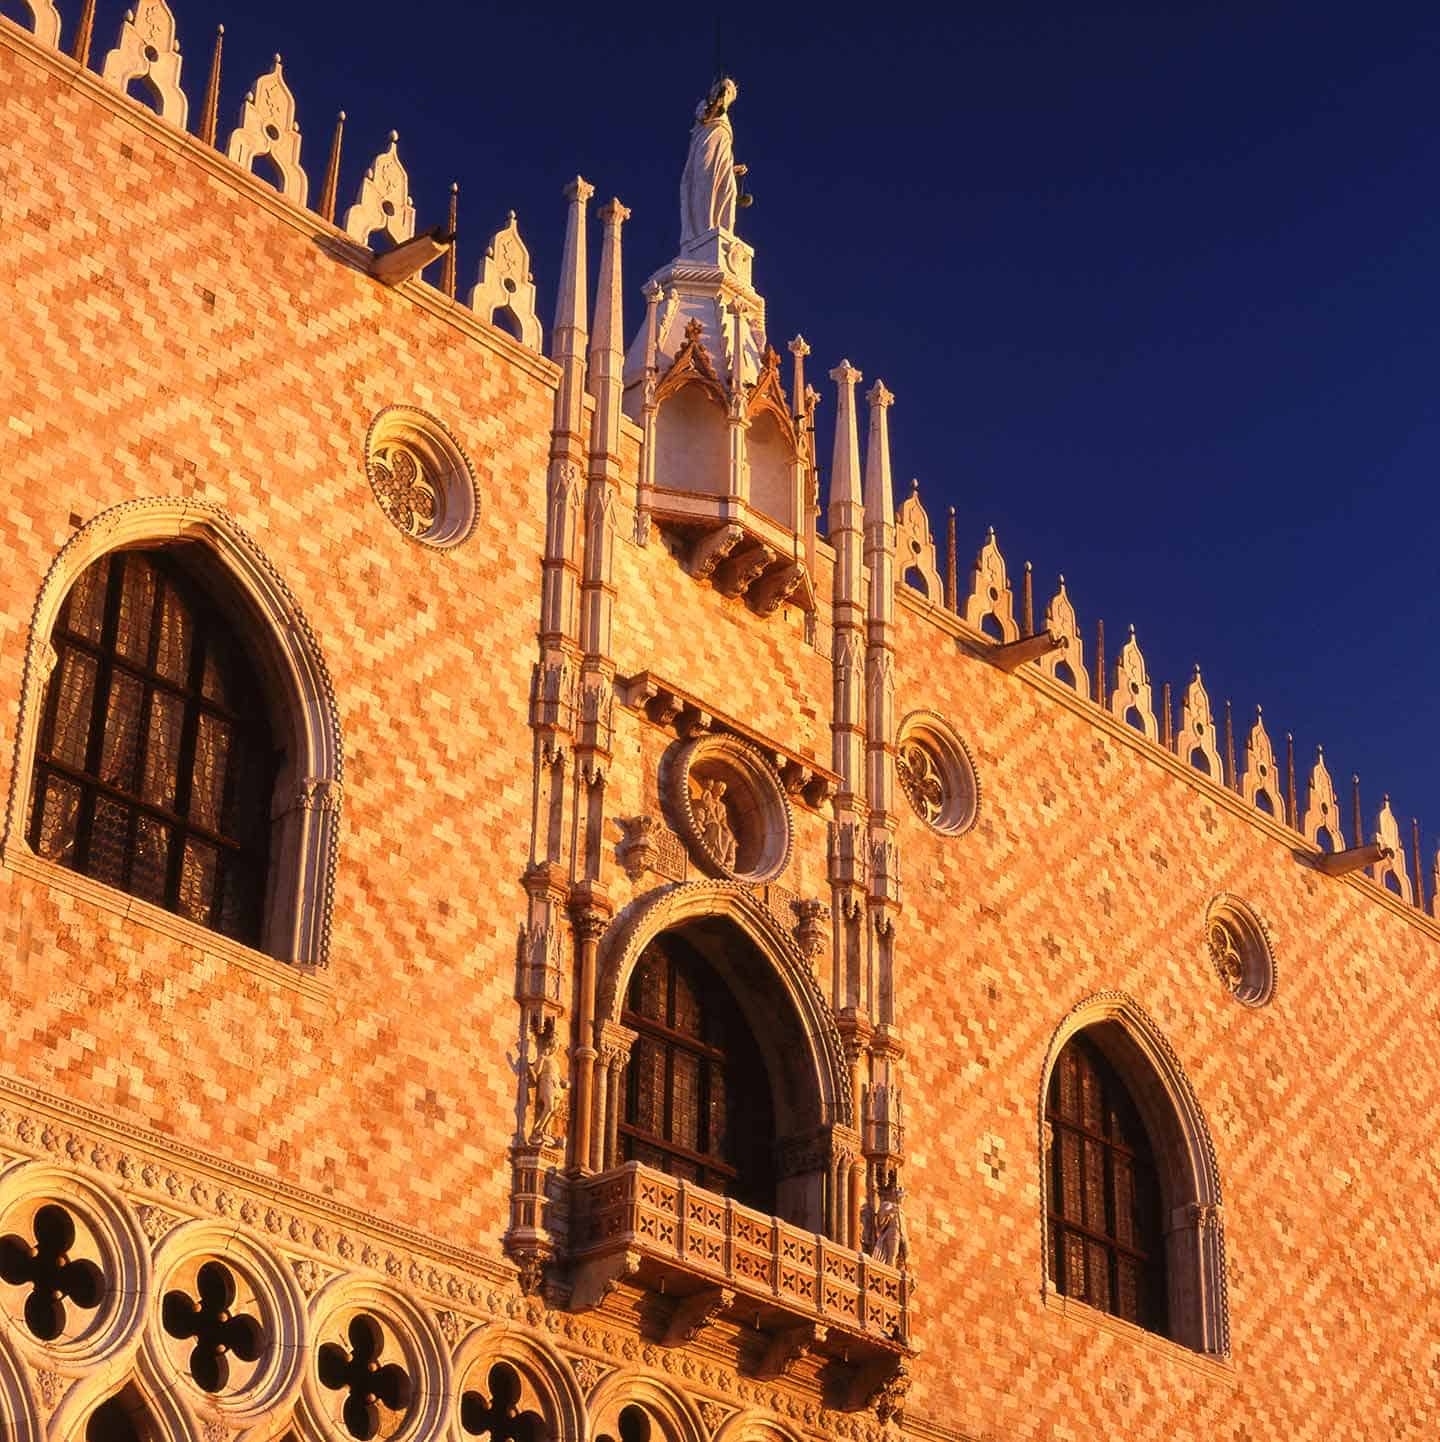 Image of the Doge's Palace Venice at sunrise